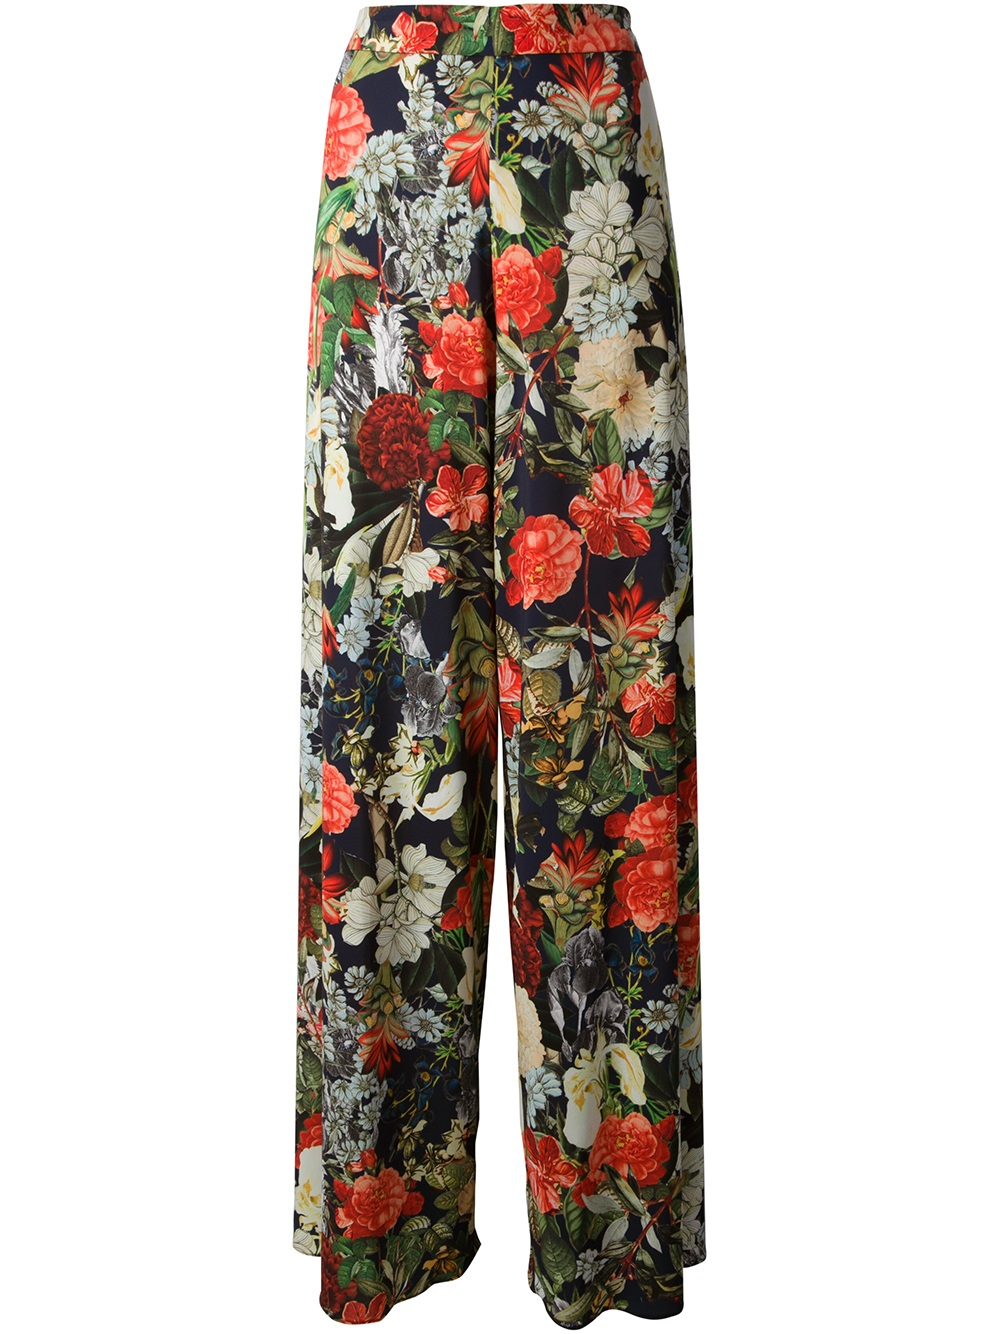 An allover floral print and side tie detail along the hem lend charming style to these crop pants. Make a statement when you wear this figure-sculpting pair with a pretty peasant top and wedge sandals.